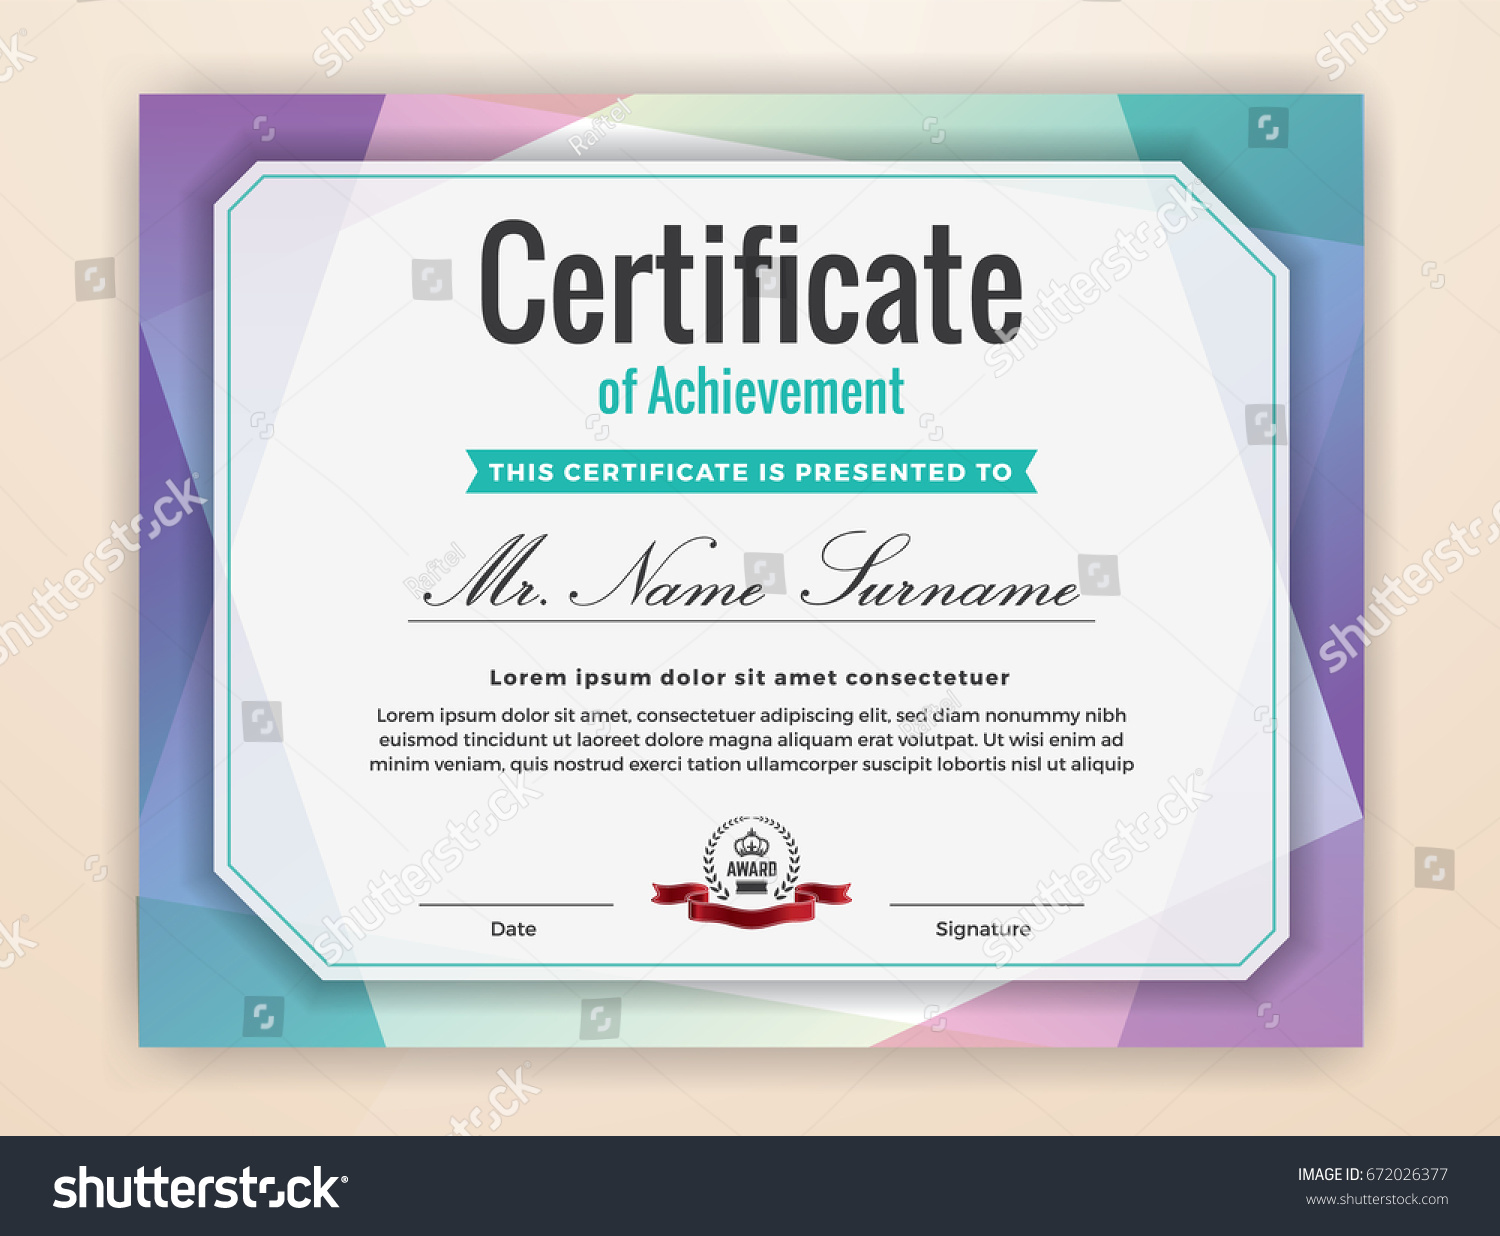 Multipurpose modern professional certificate template design stock multipurpose modern professional certificate template design for print colorful certificate of achievement background vector xflitez Choice Image